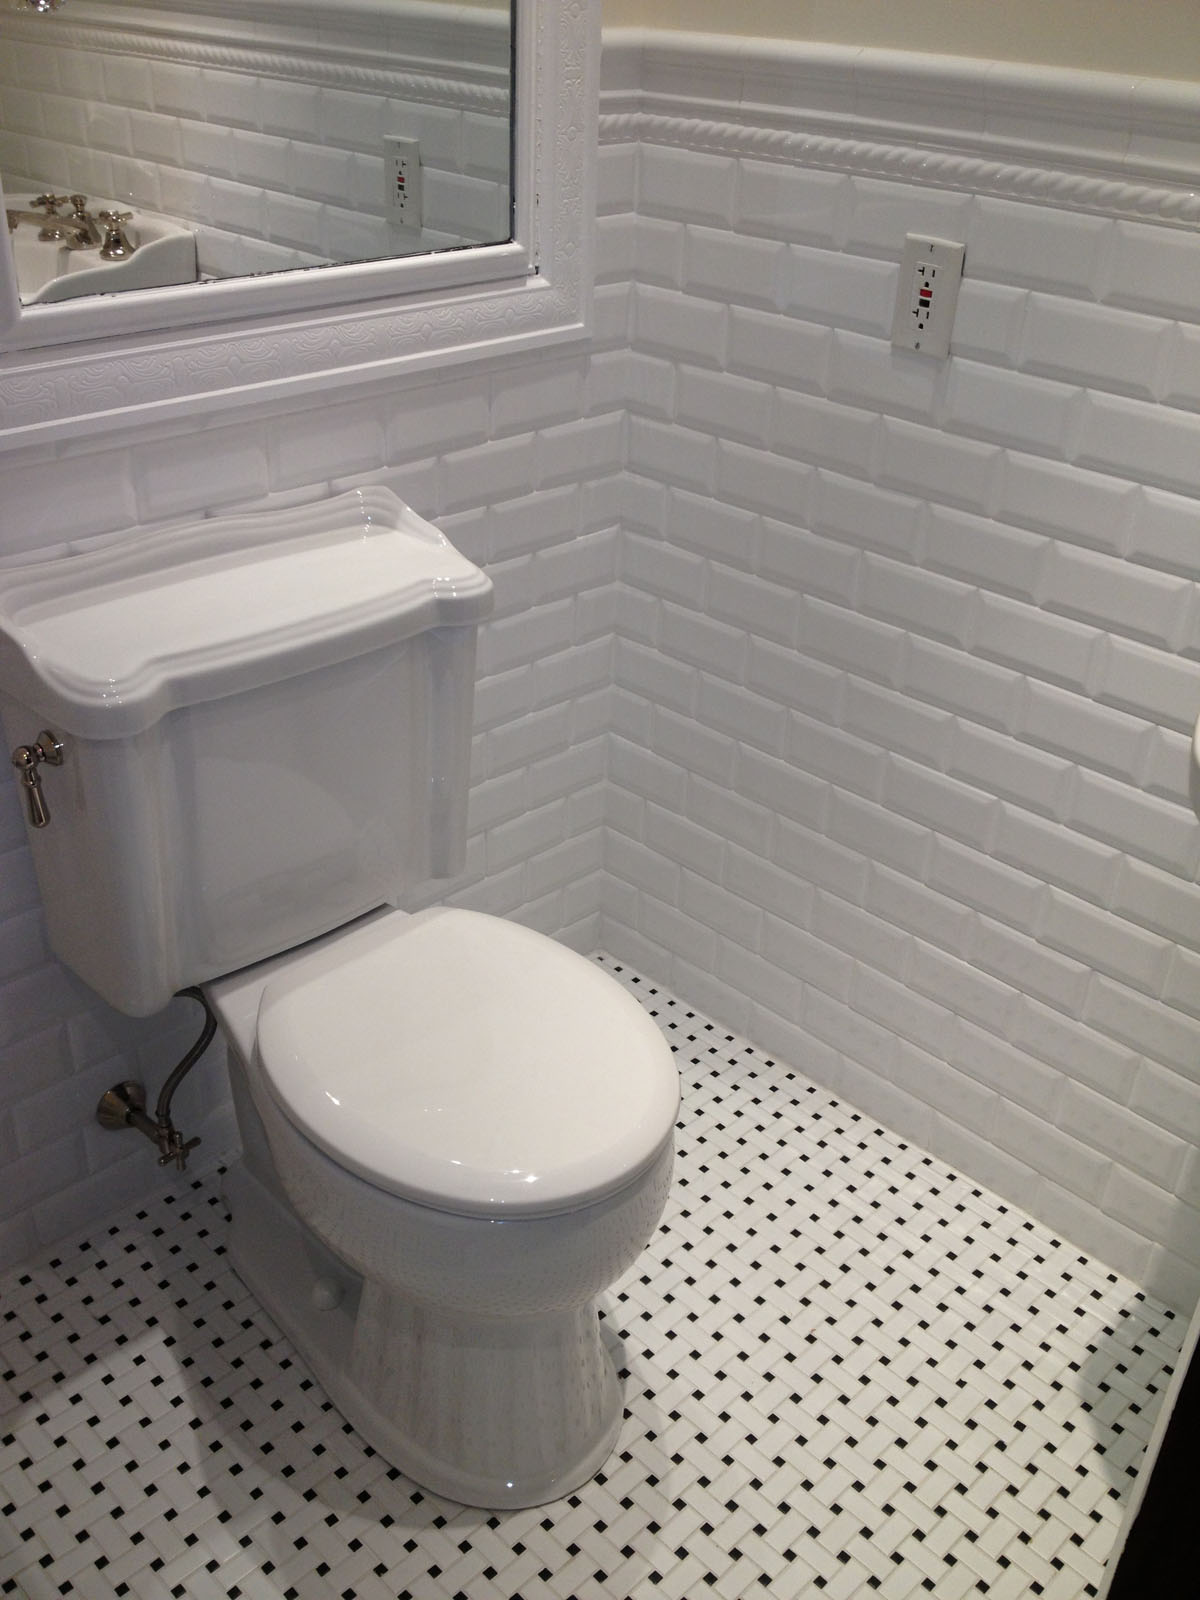 Beacon St. Boston after bathroom remodel showing toilet, floor and faux brick wall tile